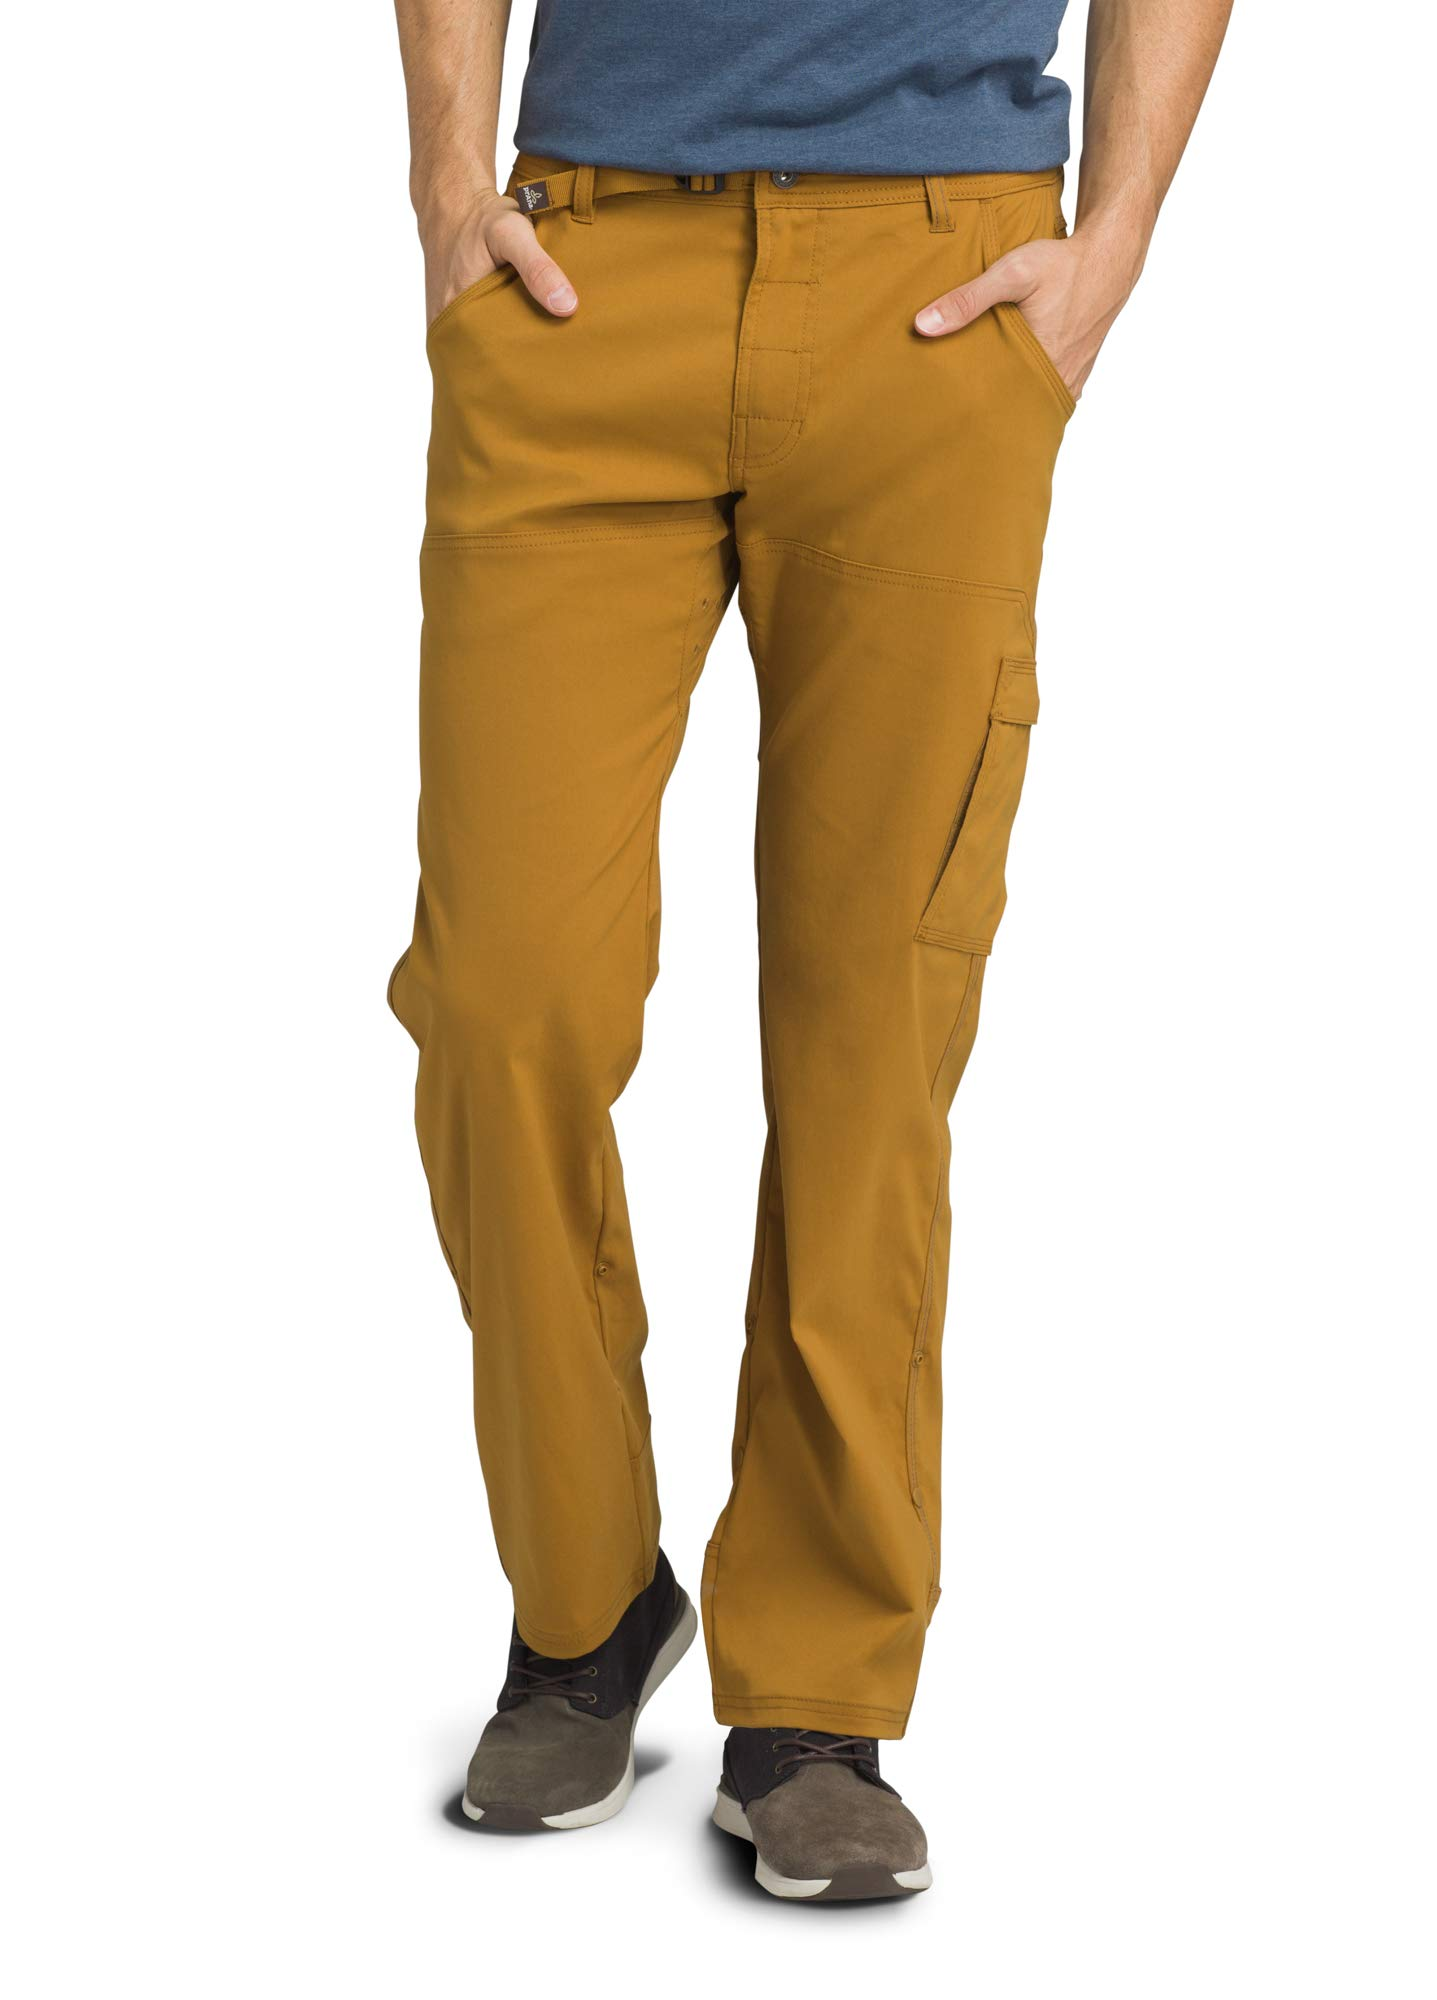 prAna - Men's Stretch Zion Lightweight, Durable, Water Repellent Pants for Hiking and Everyday Wear, 34'' Inseam, Bronzed, 34 by prAna